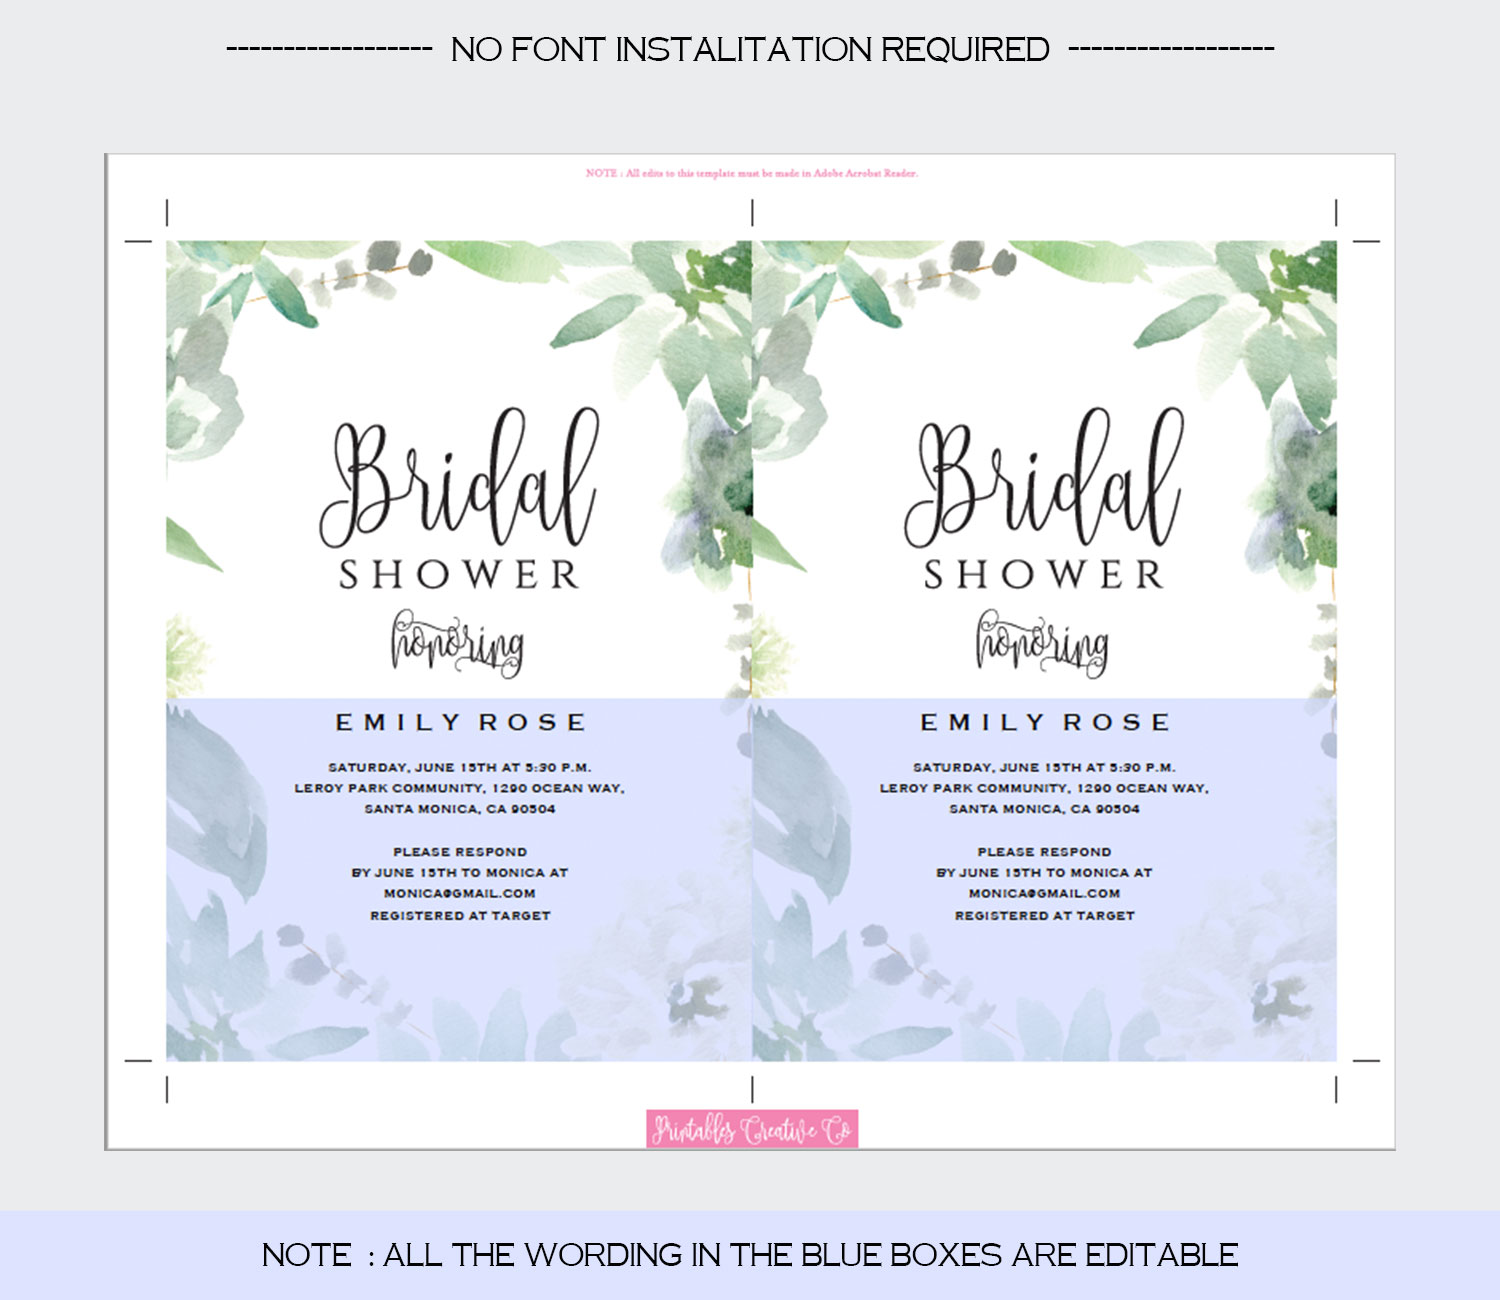 Bridal Shower Invitation Template example image 5